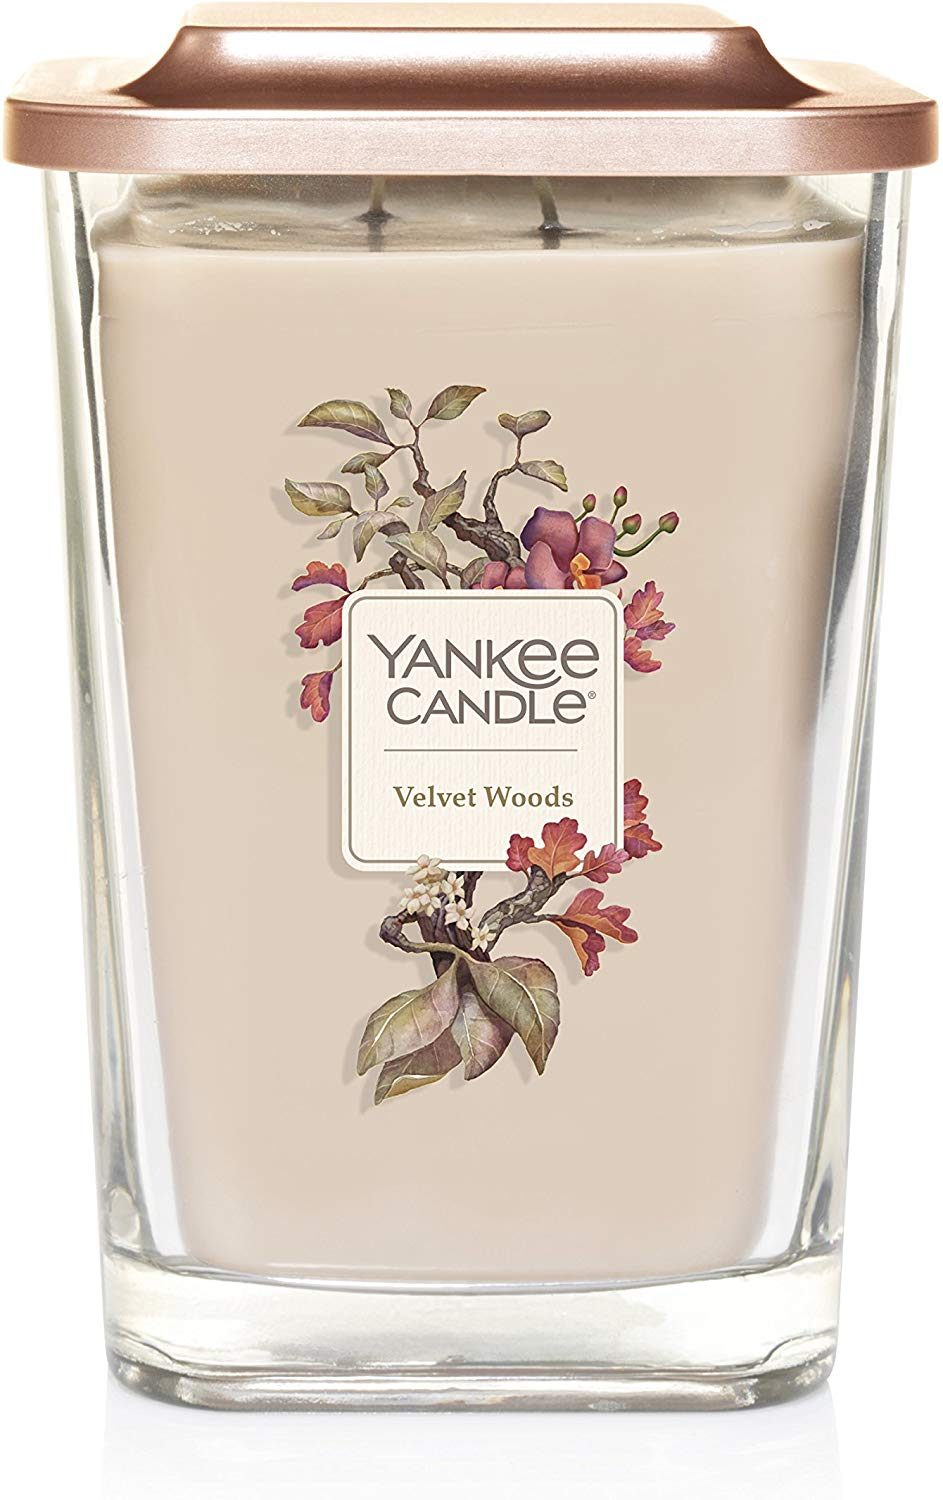 Yankee Candle Candle for £7.51on Amazon